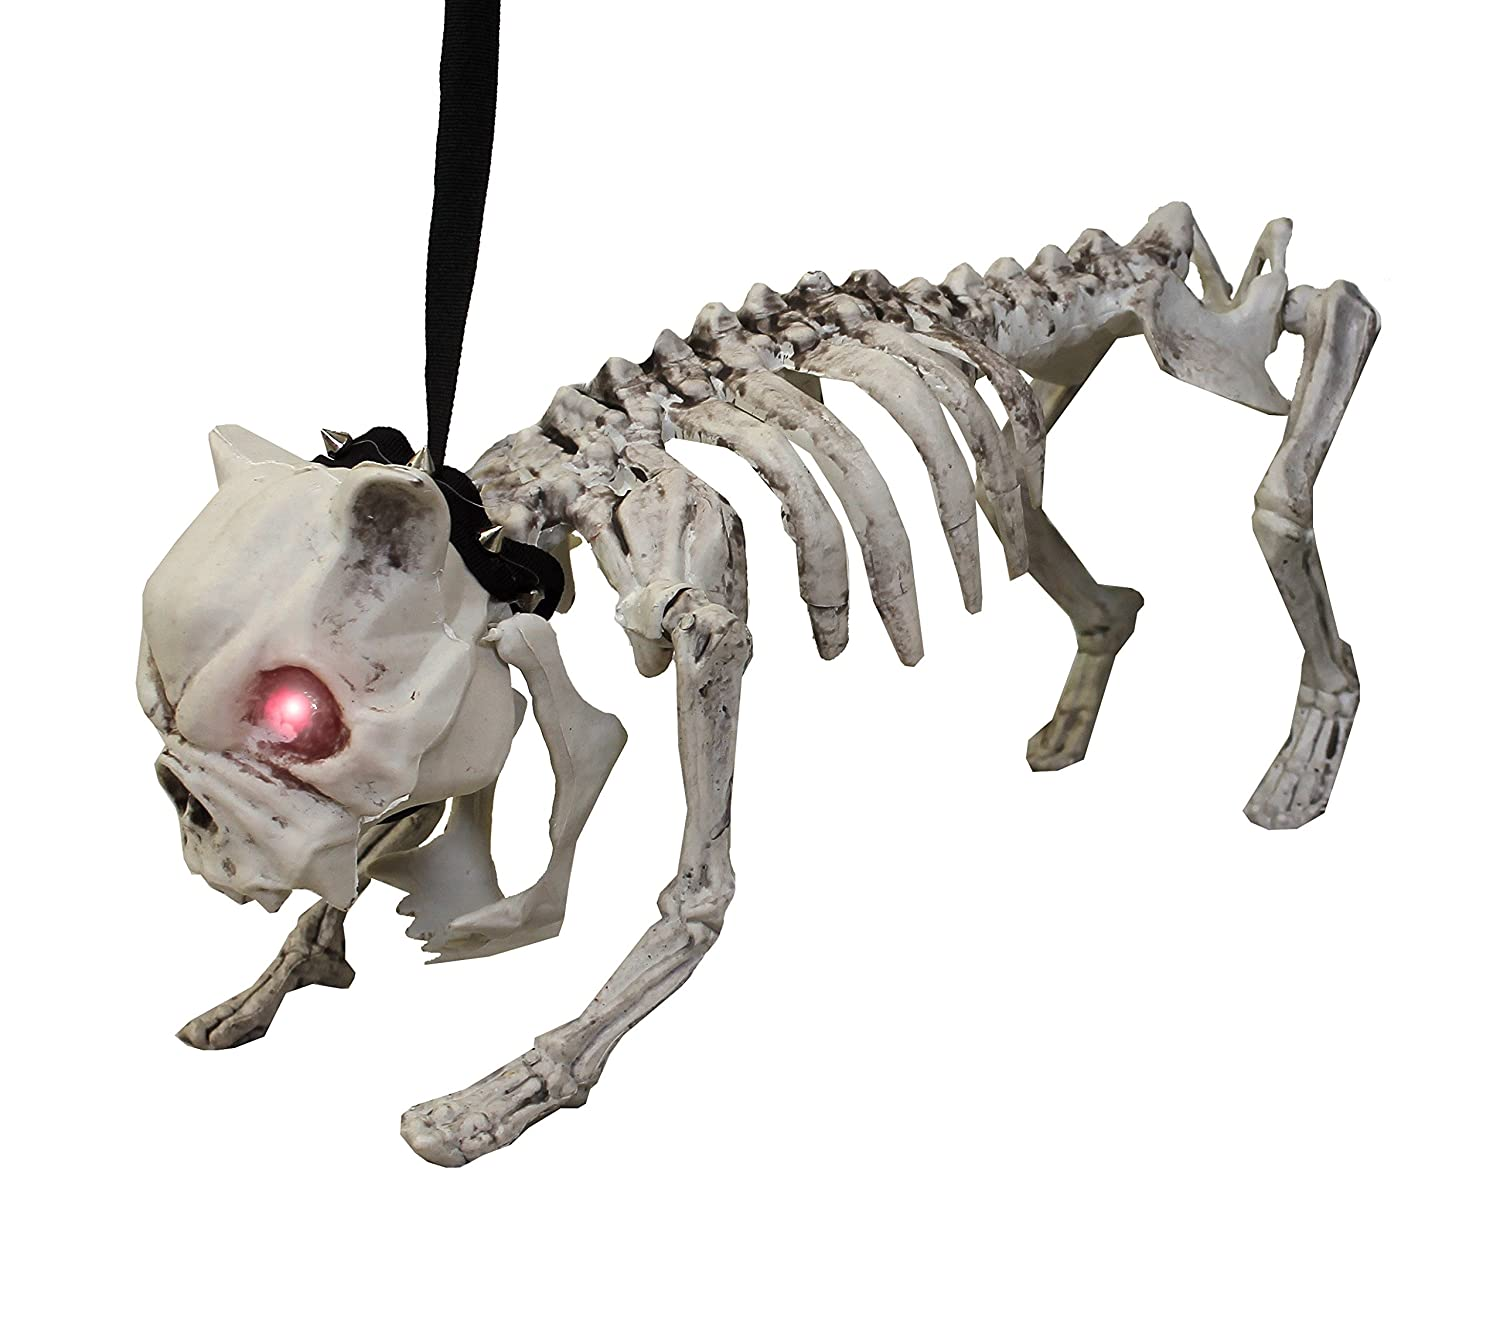 PERFECT HALLOWEEN DECORATION FOR PARTIES OR ACCESSORY FOR